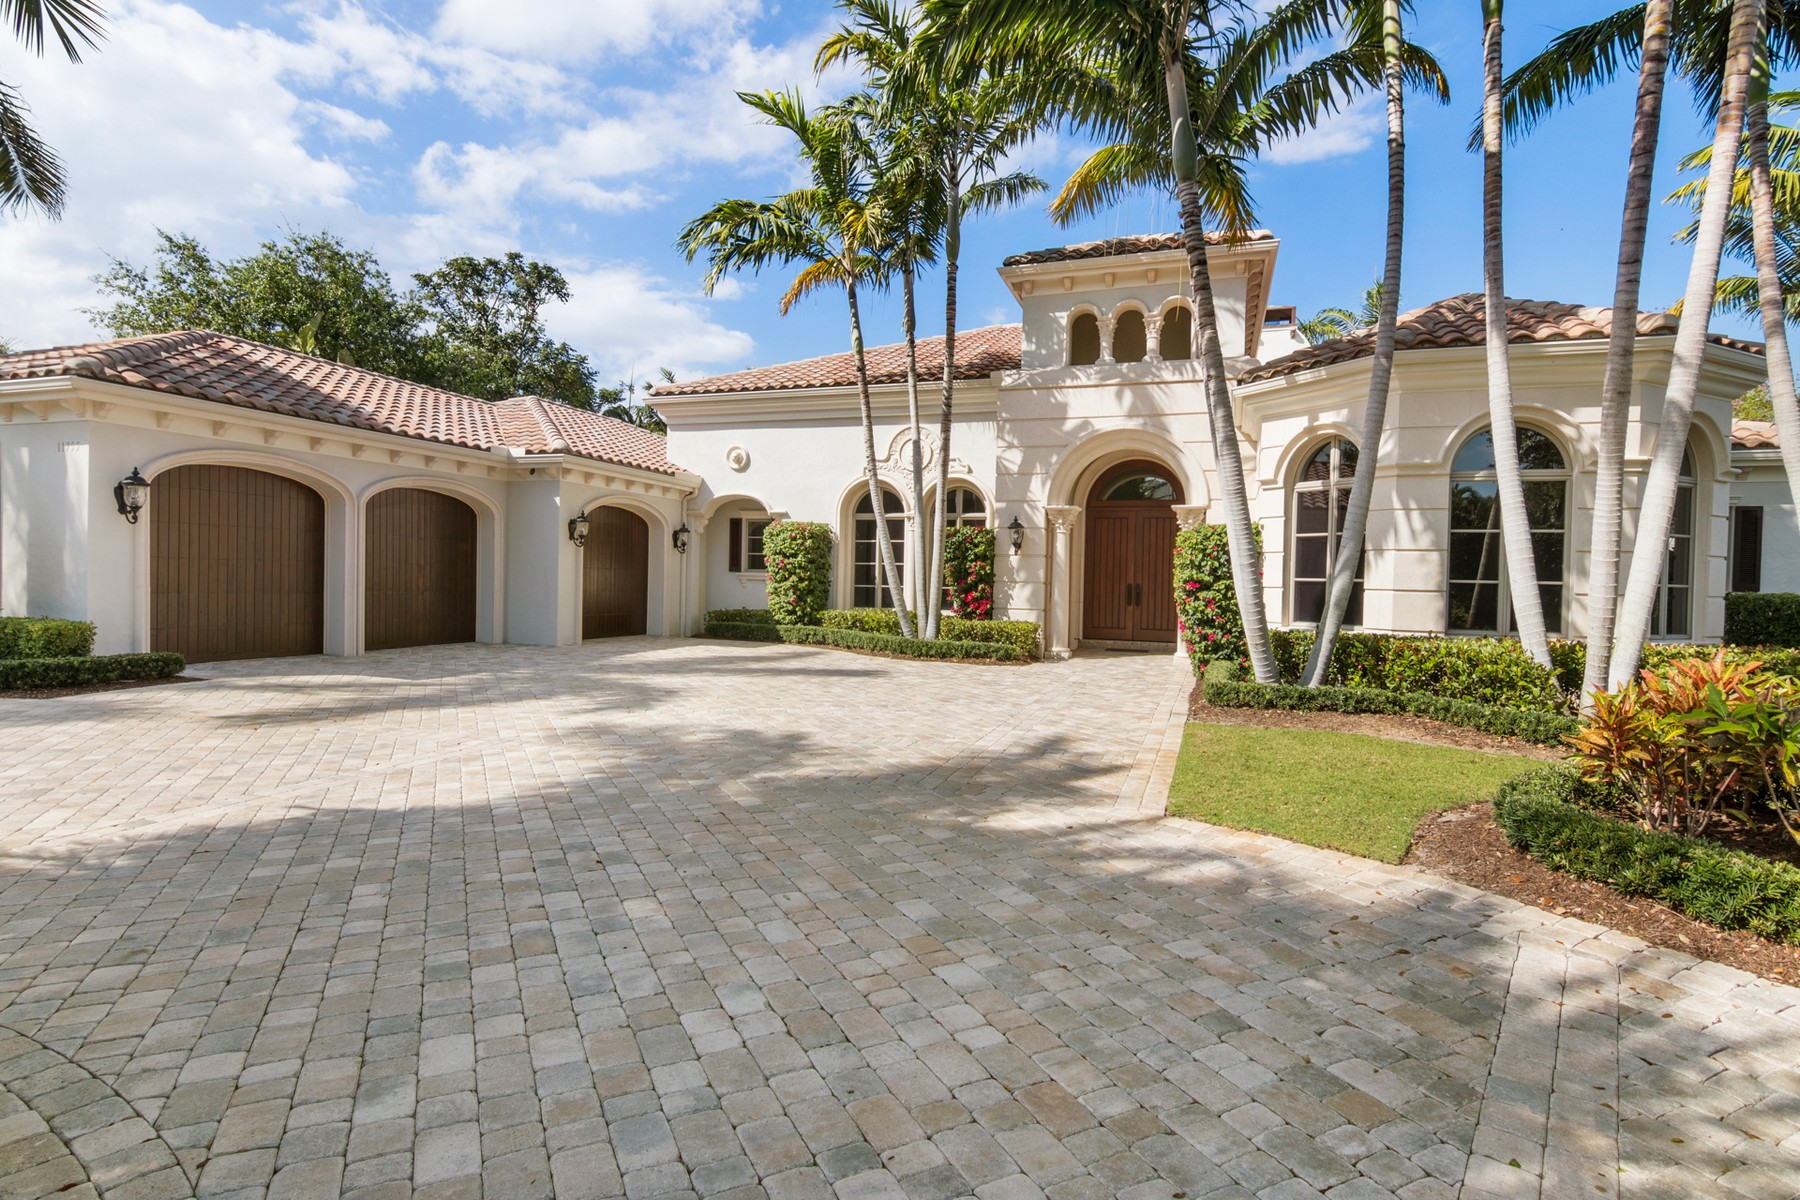 Maison unifamiliale pour l Vente à 11755 Elina Court at Old Palm Golf Club Old Palm Golf Club, Palm Beach Gardens, Florida, 33410 États-Unis